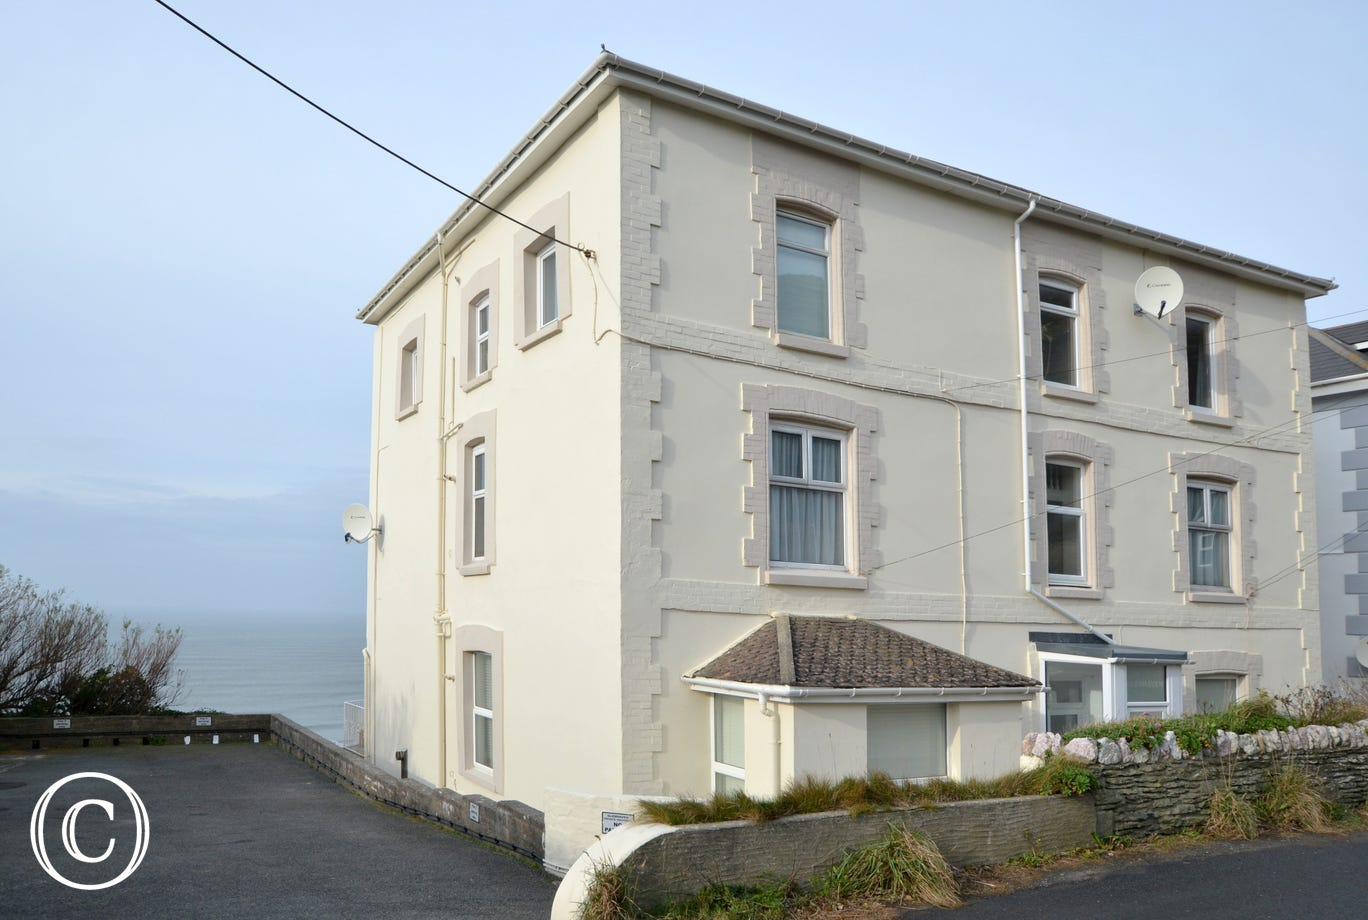 Glenhaven is a second floor apartment located between the award winning beach resort of Woolacombe and the historic hilltop village of Mortehoe